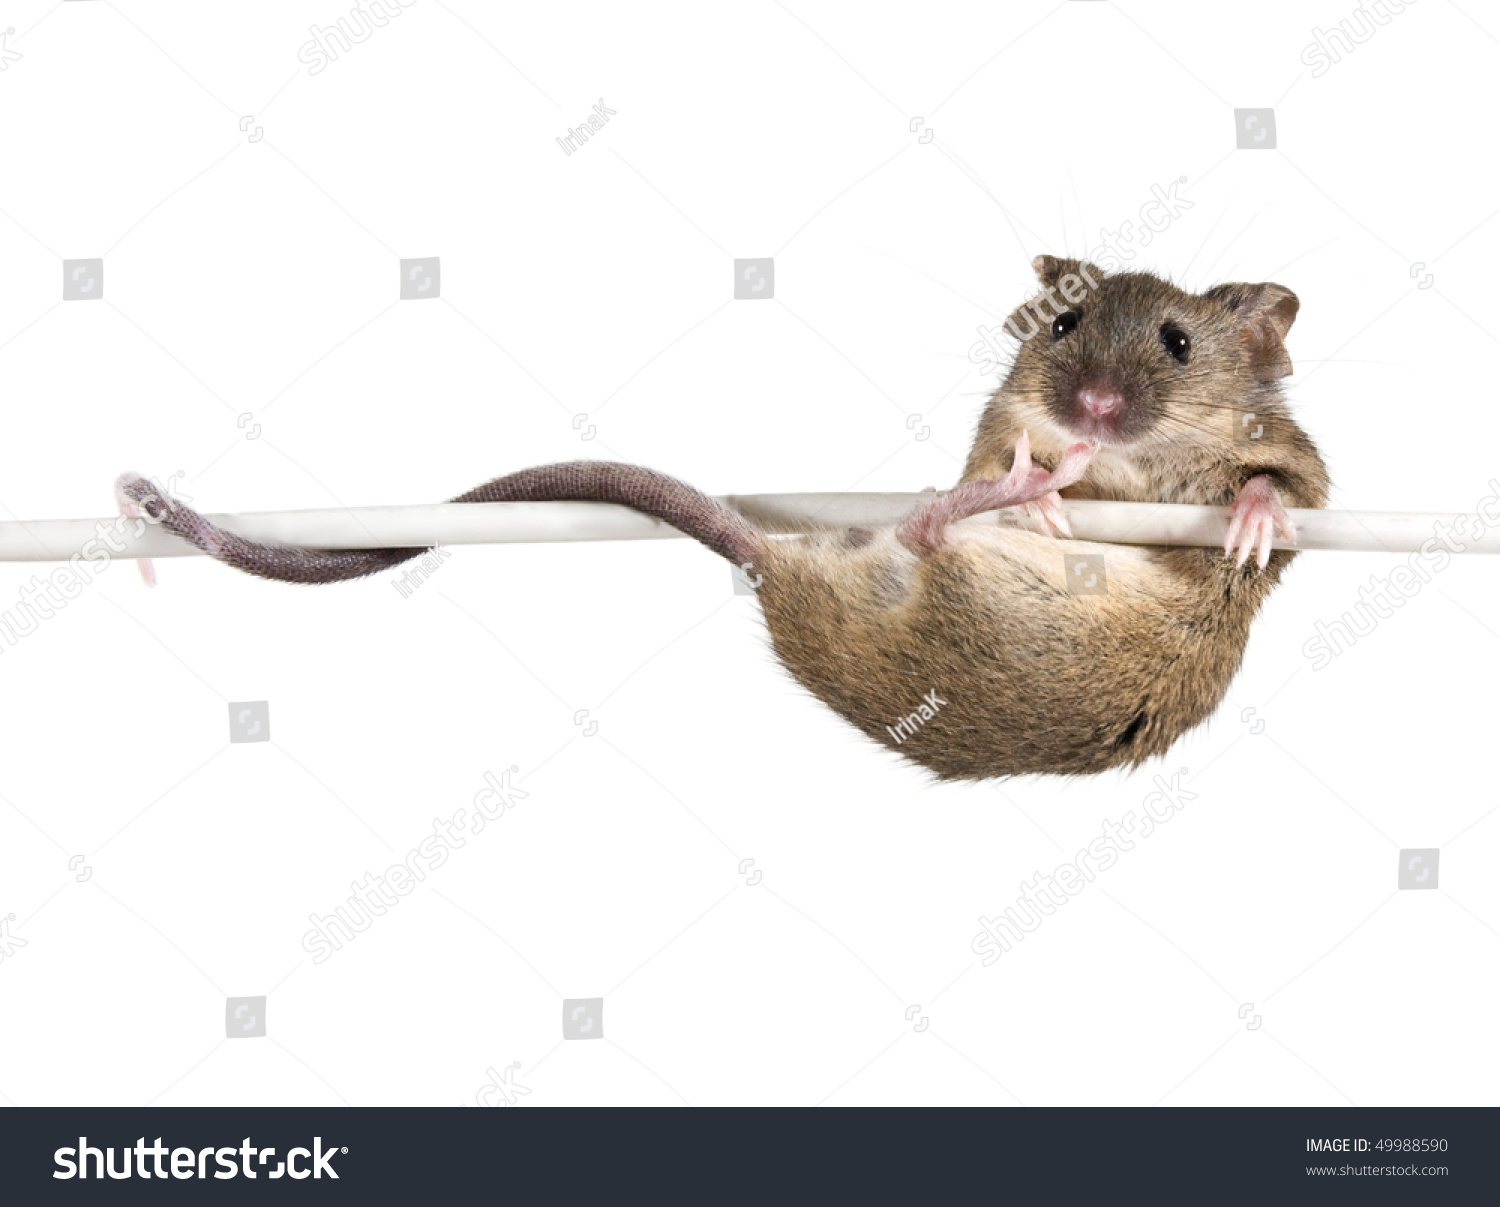 Common house mouse mus musculus on stock photo 49988590 for Mouse house music